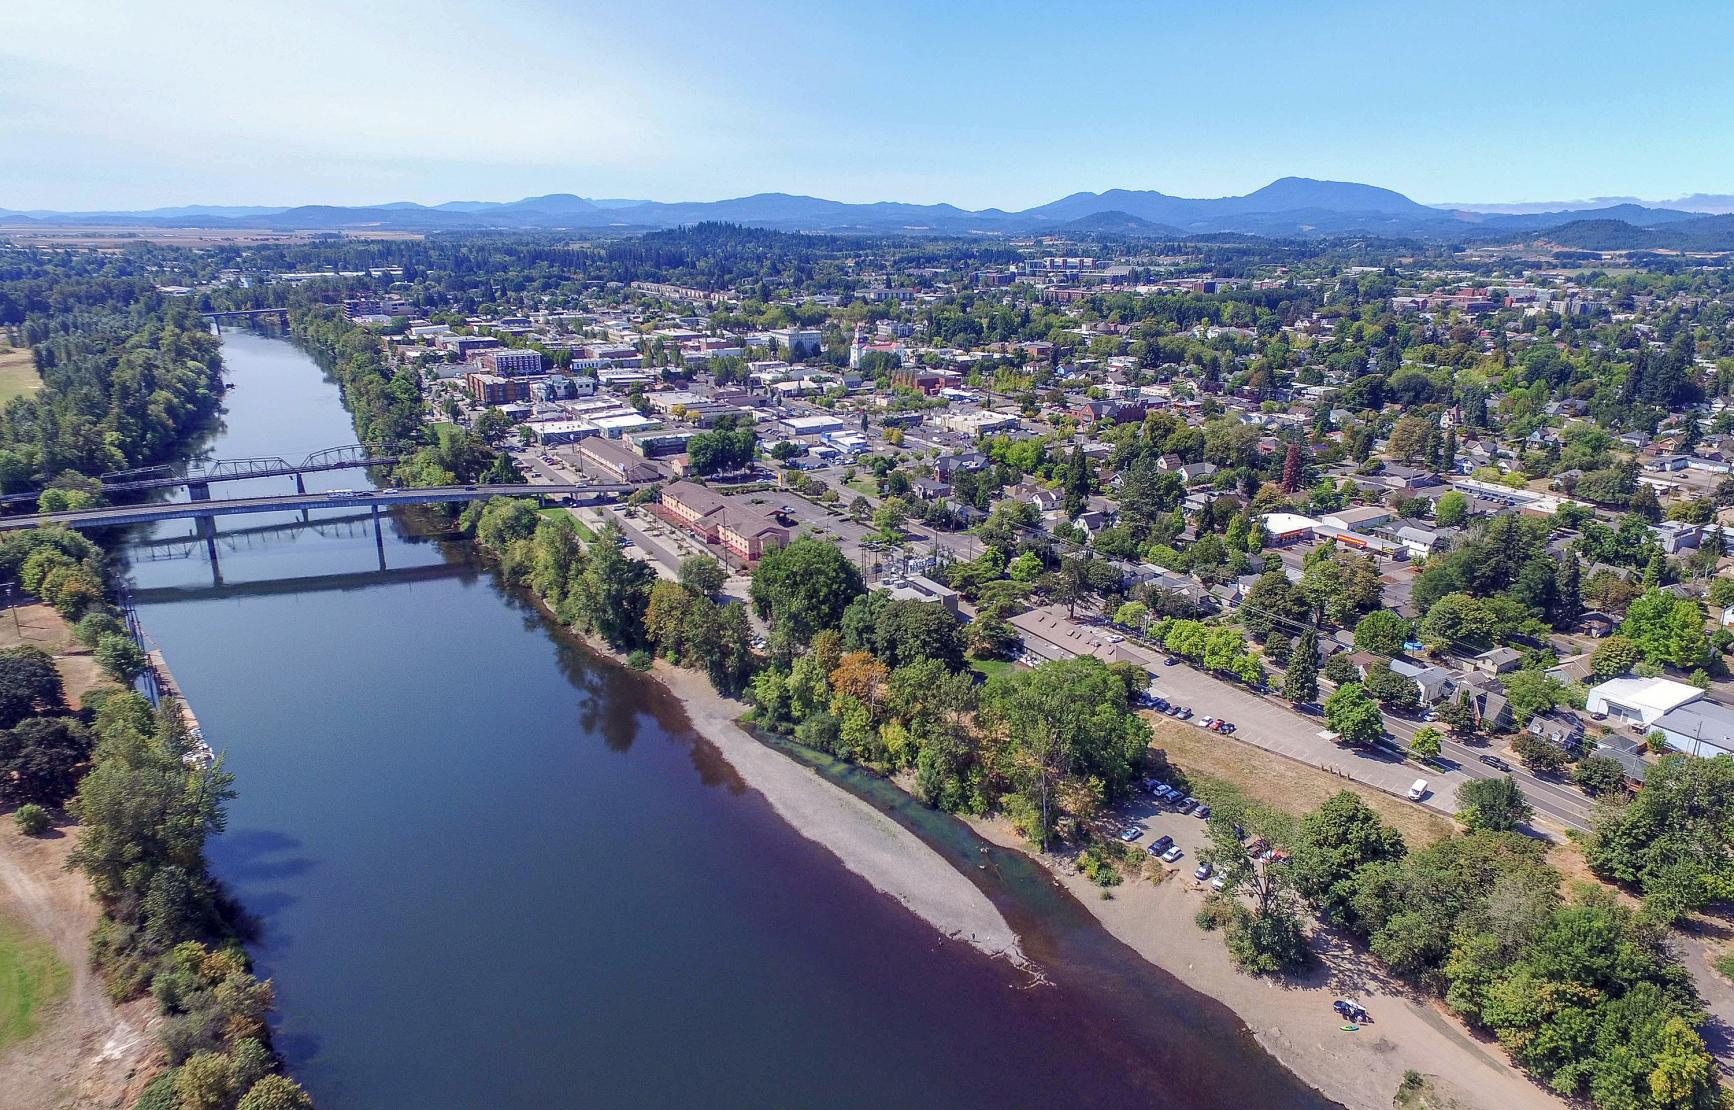 Aerial shot of Corvallis